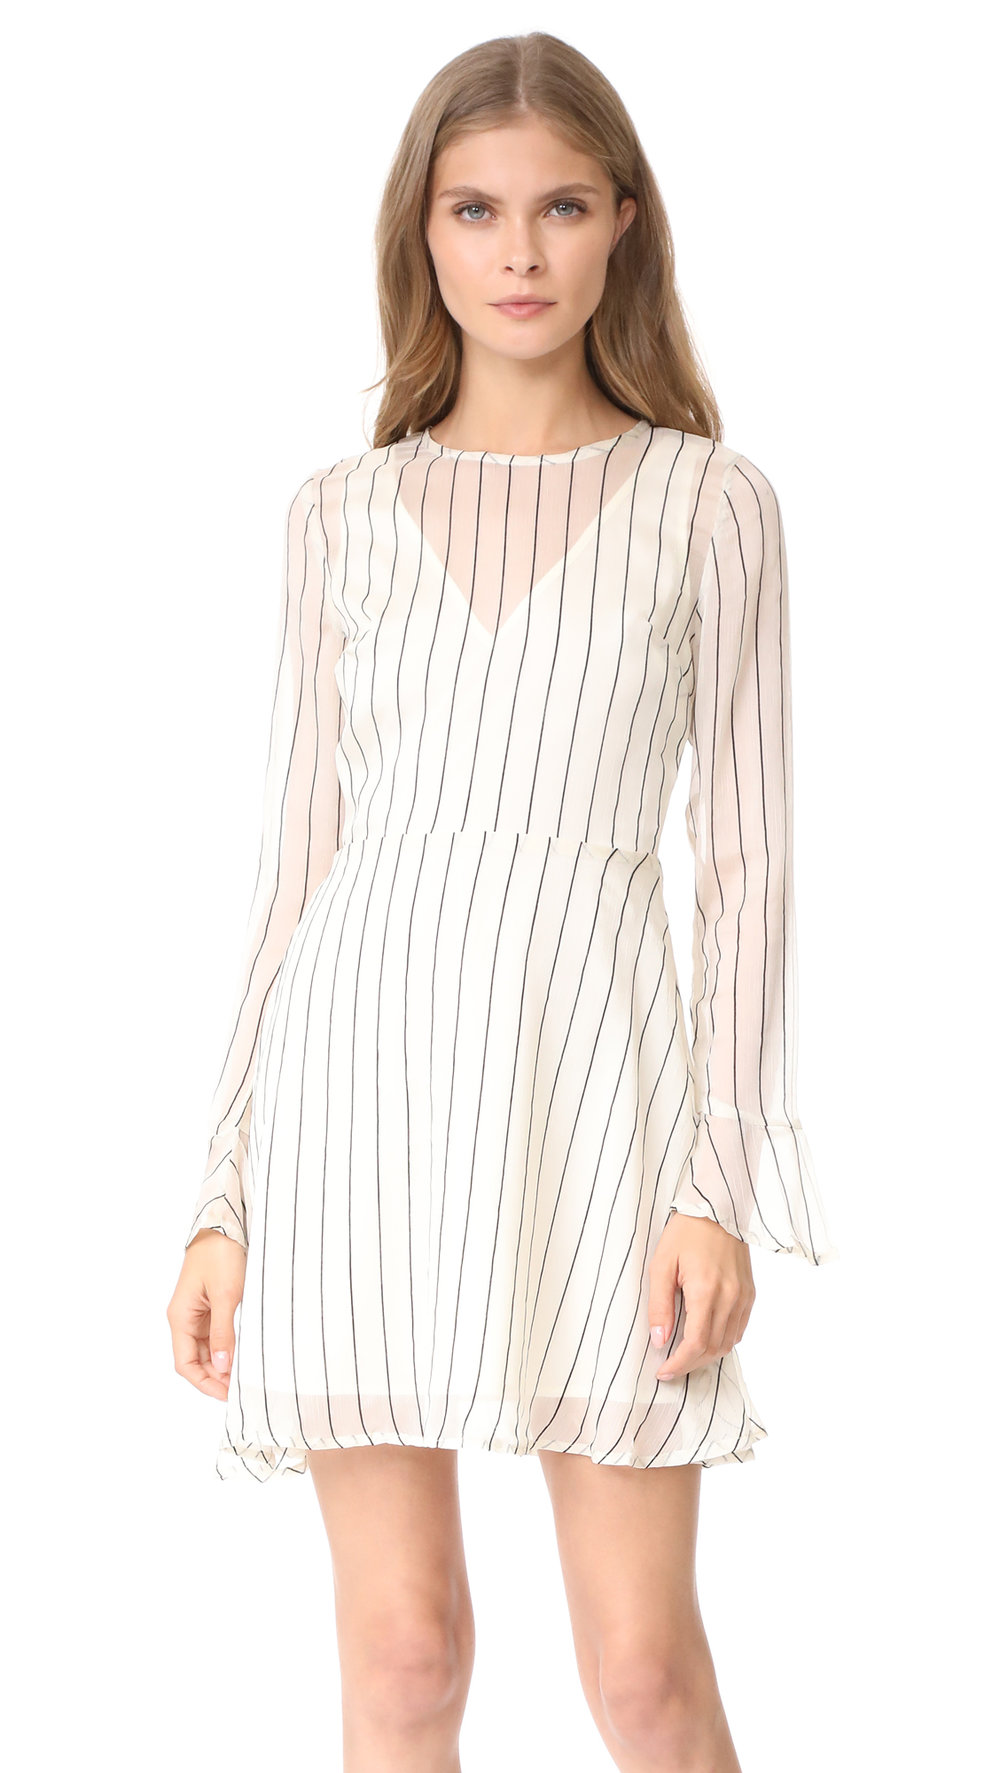 This type of dress is top on your list, imagine this white stripped dress with sneakers or heels, anything works!